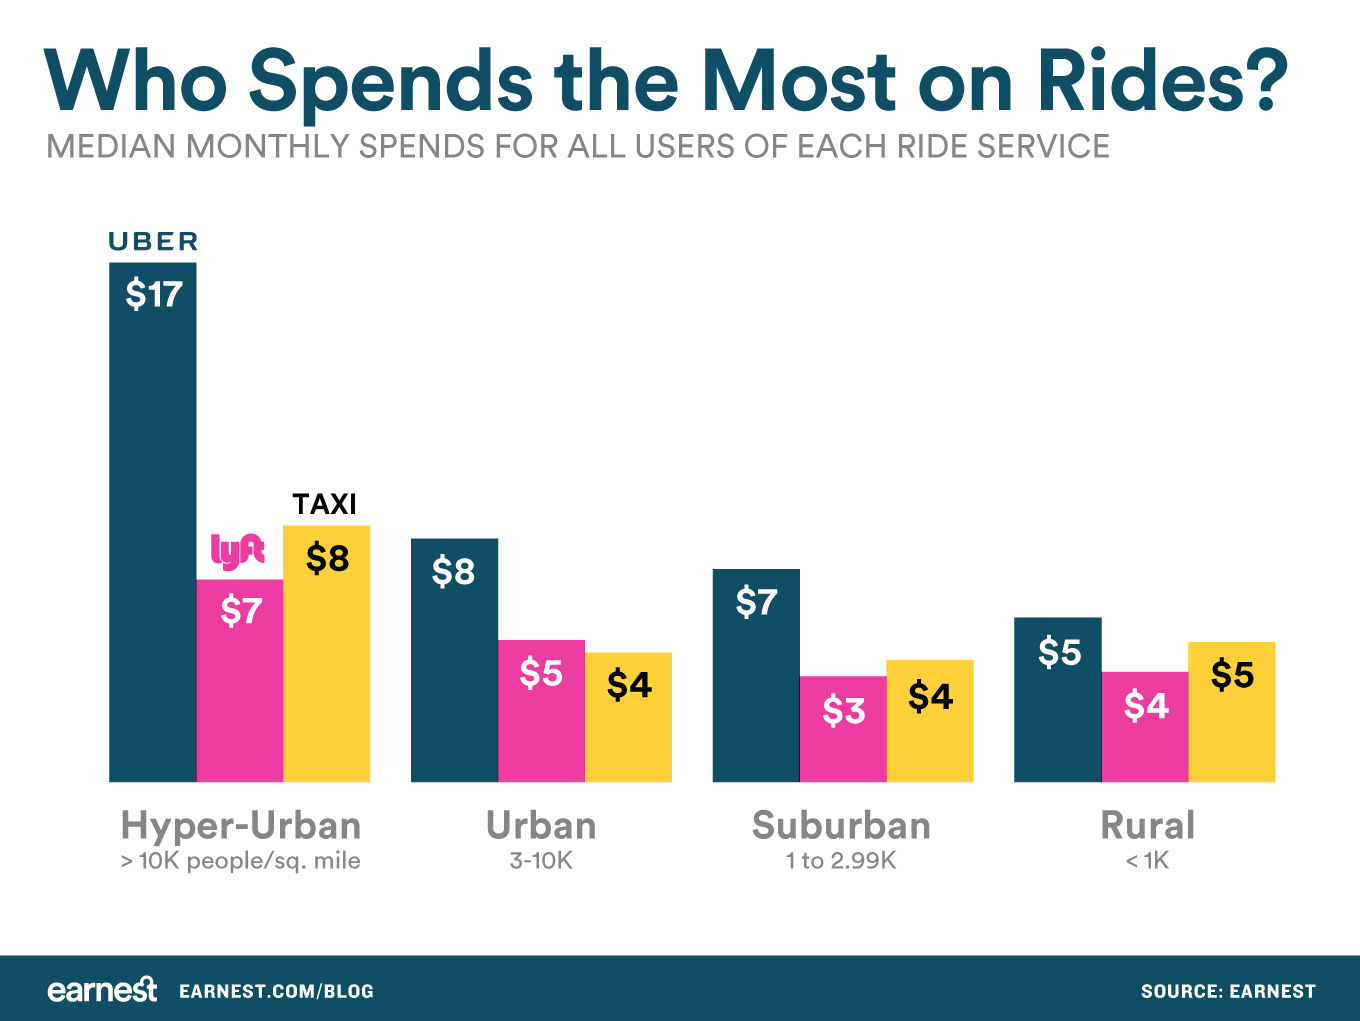 Who-spends-on-rides-by-population-density